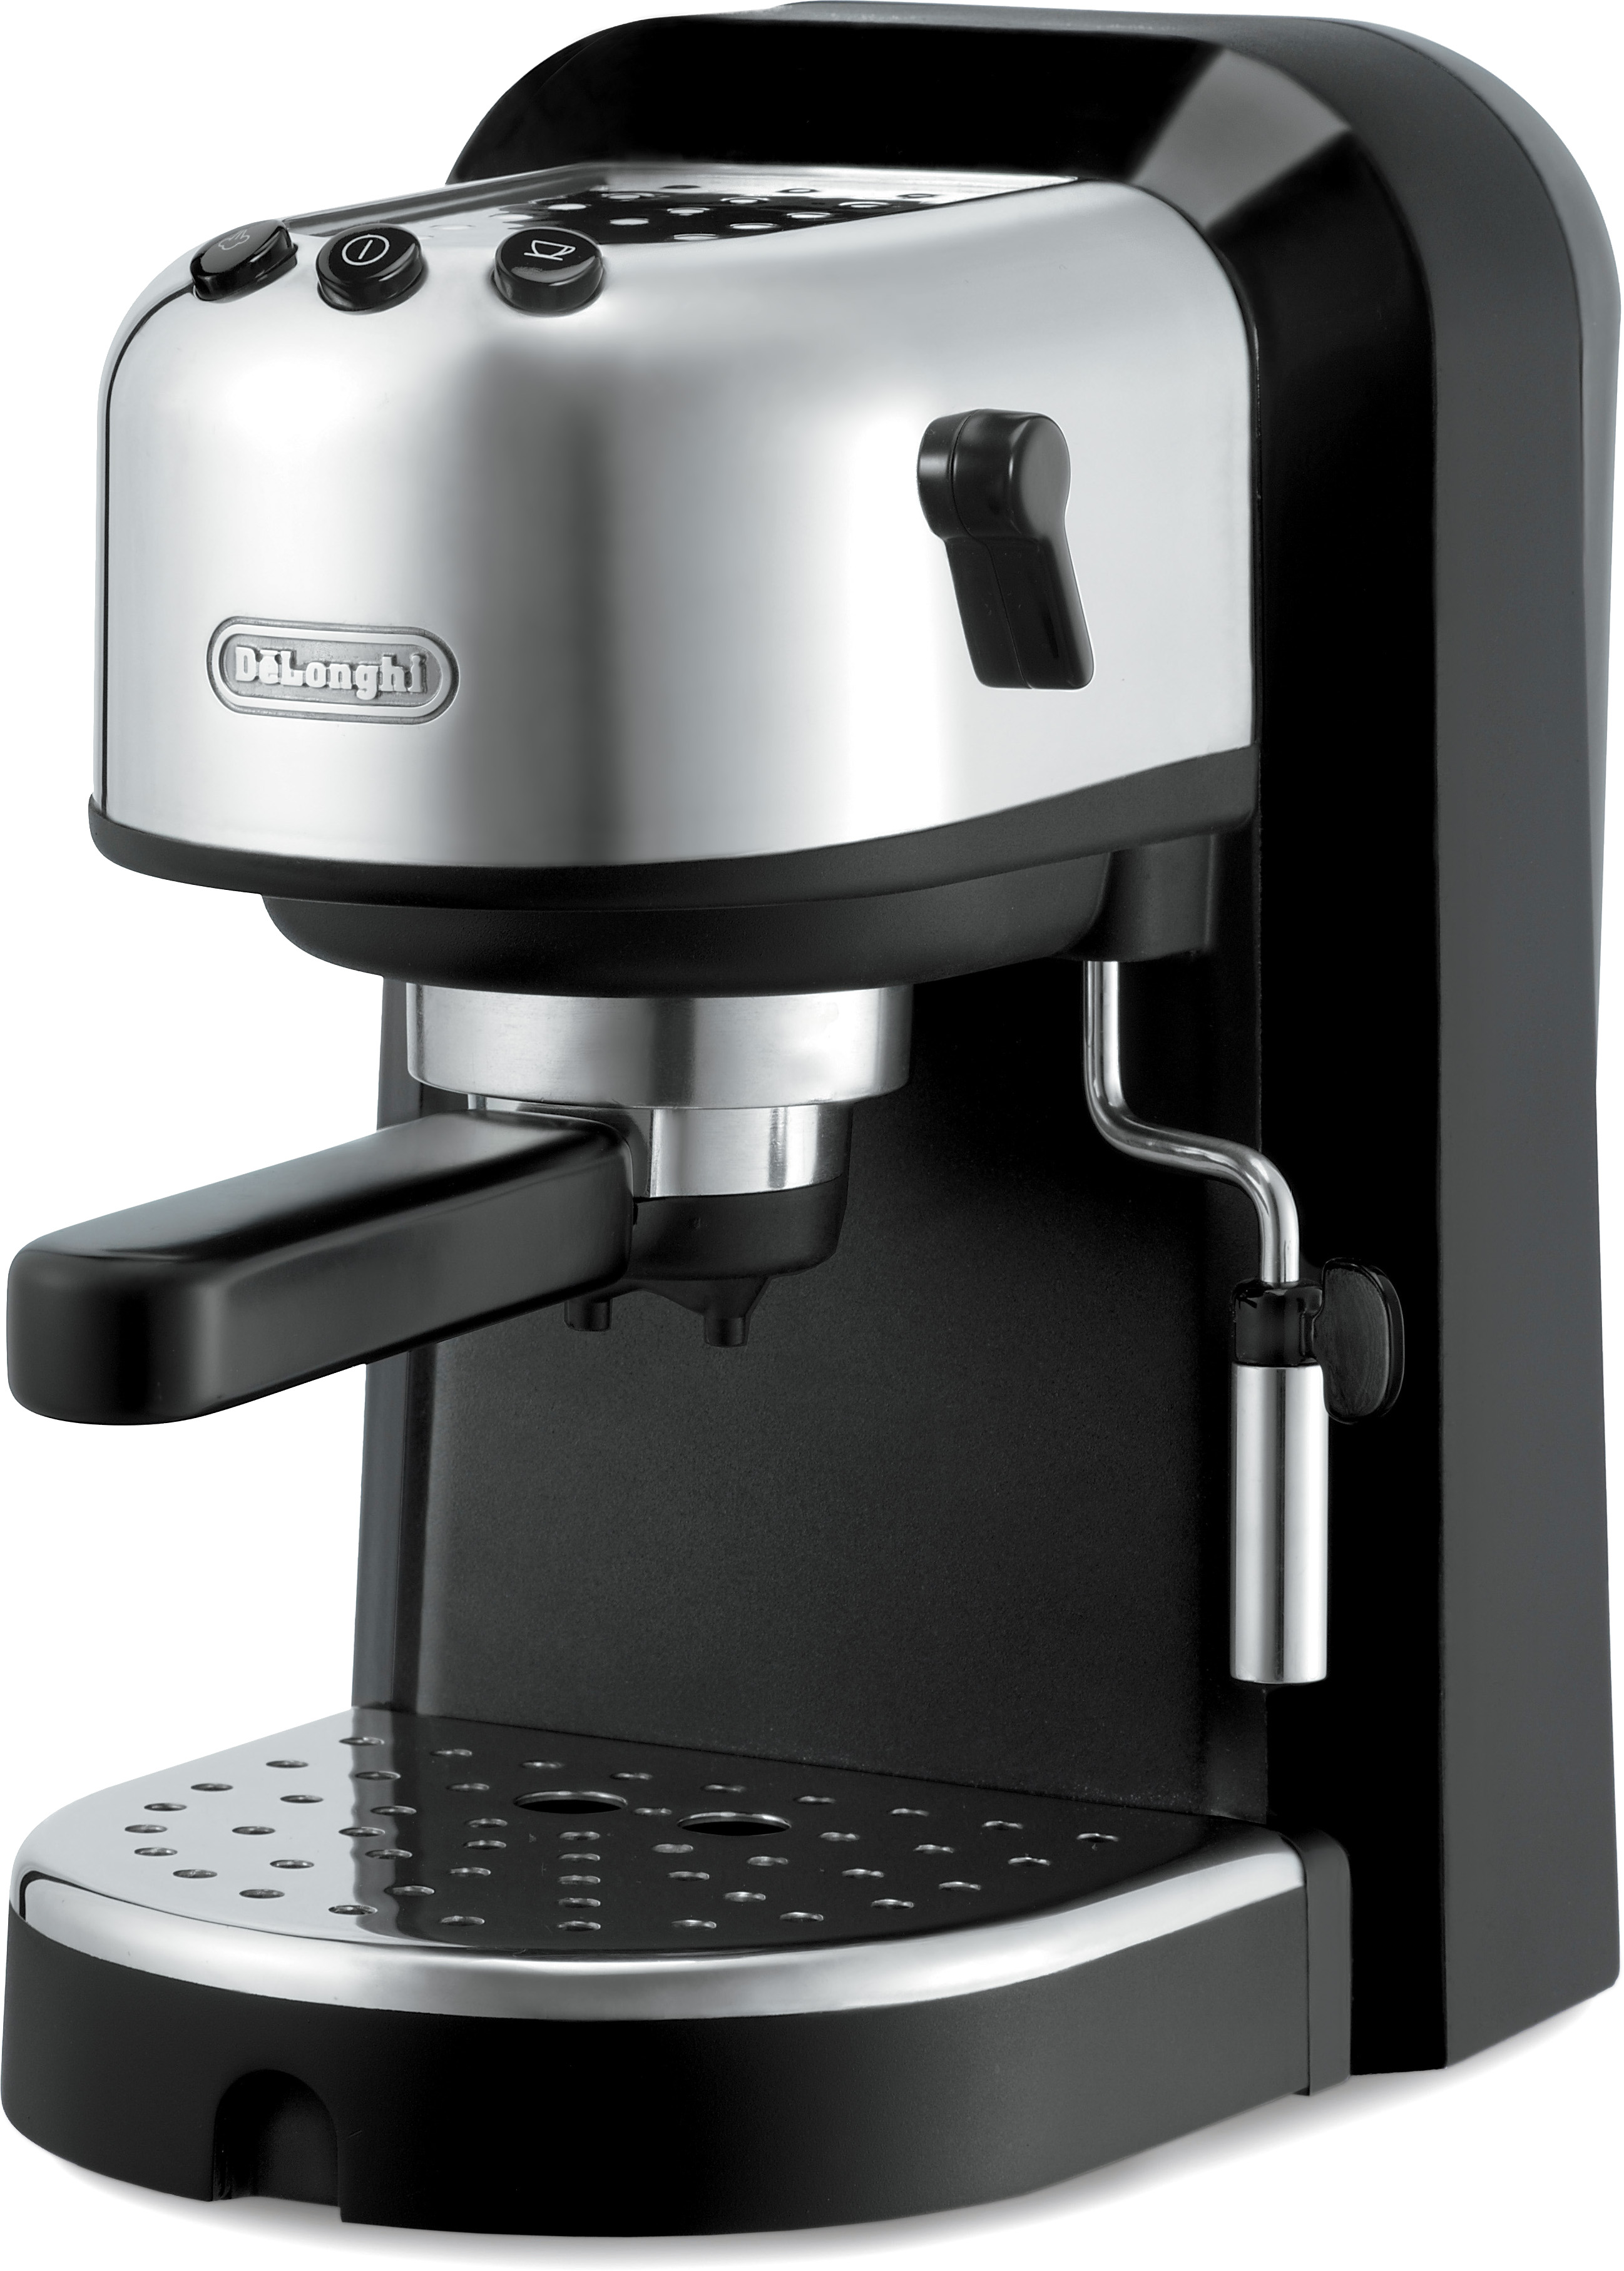 DeLonghi Black and Stainless Steel Pump Driven Espresso and Cappuccino Maker